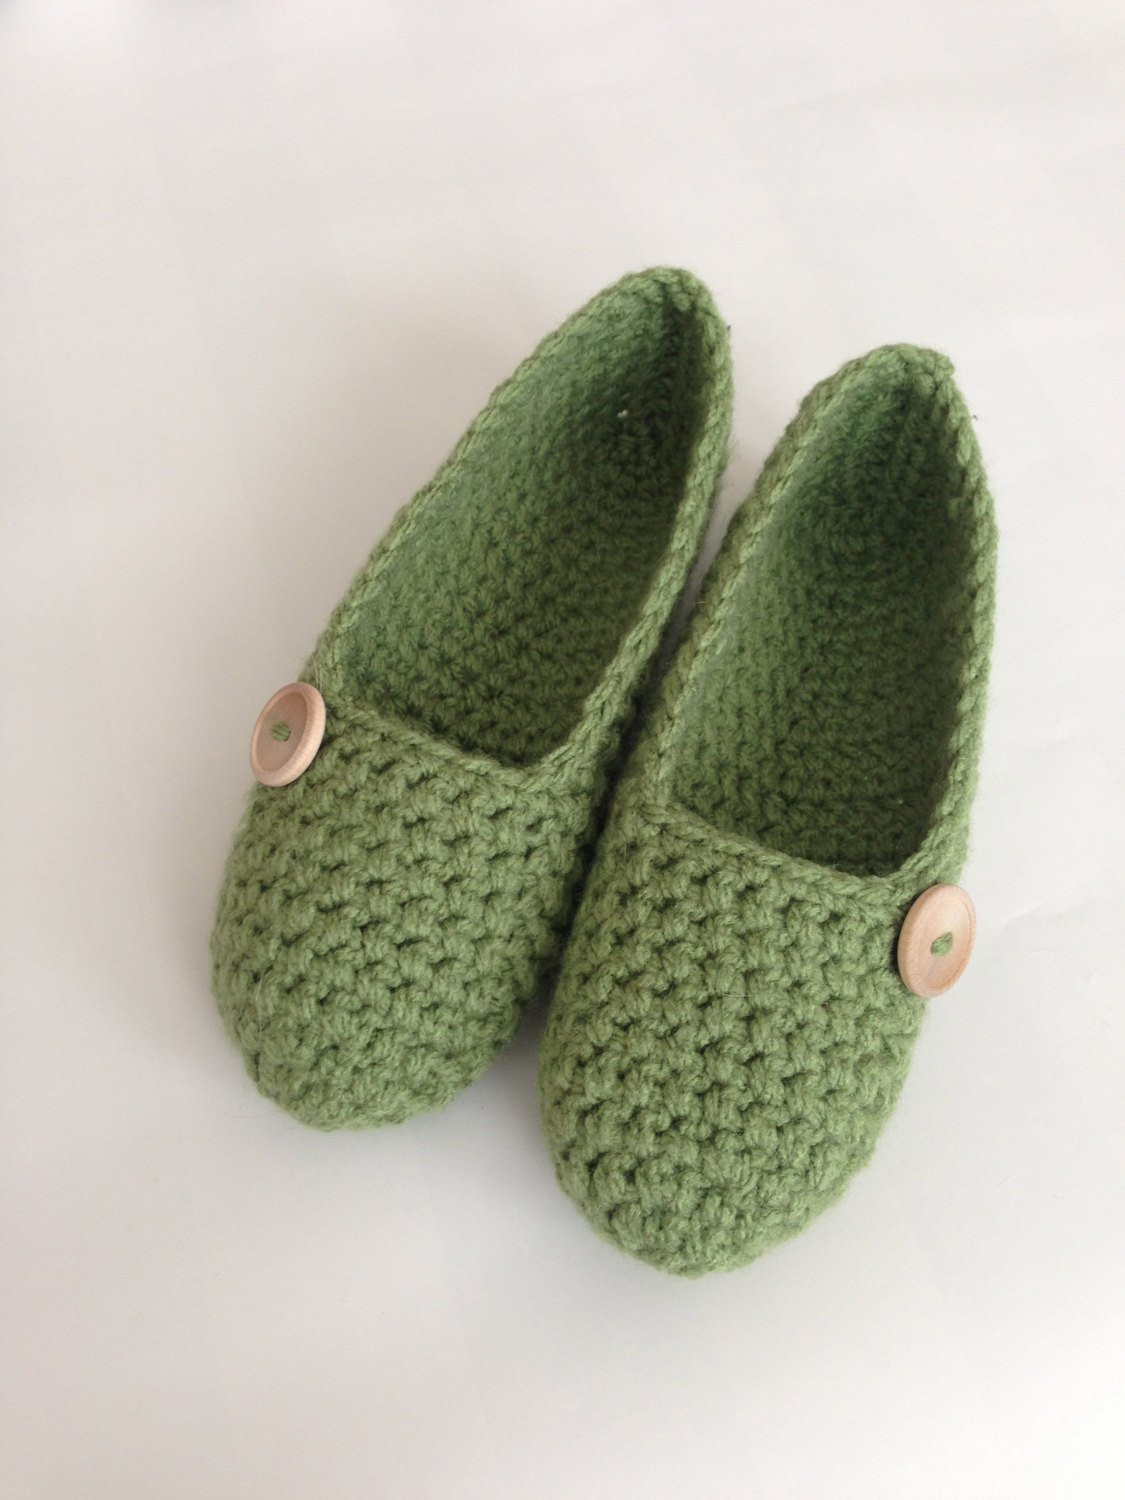 Best Of Tea Leaf Simply Slippers Adult Crochet Slippers Women Crochet Adult Slippers Of Charming 47 Ideas Crochet Adult Slippers